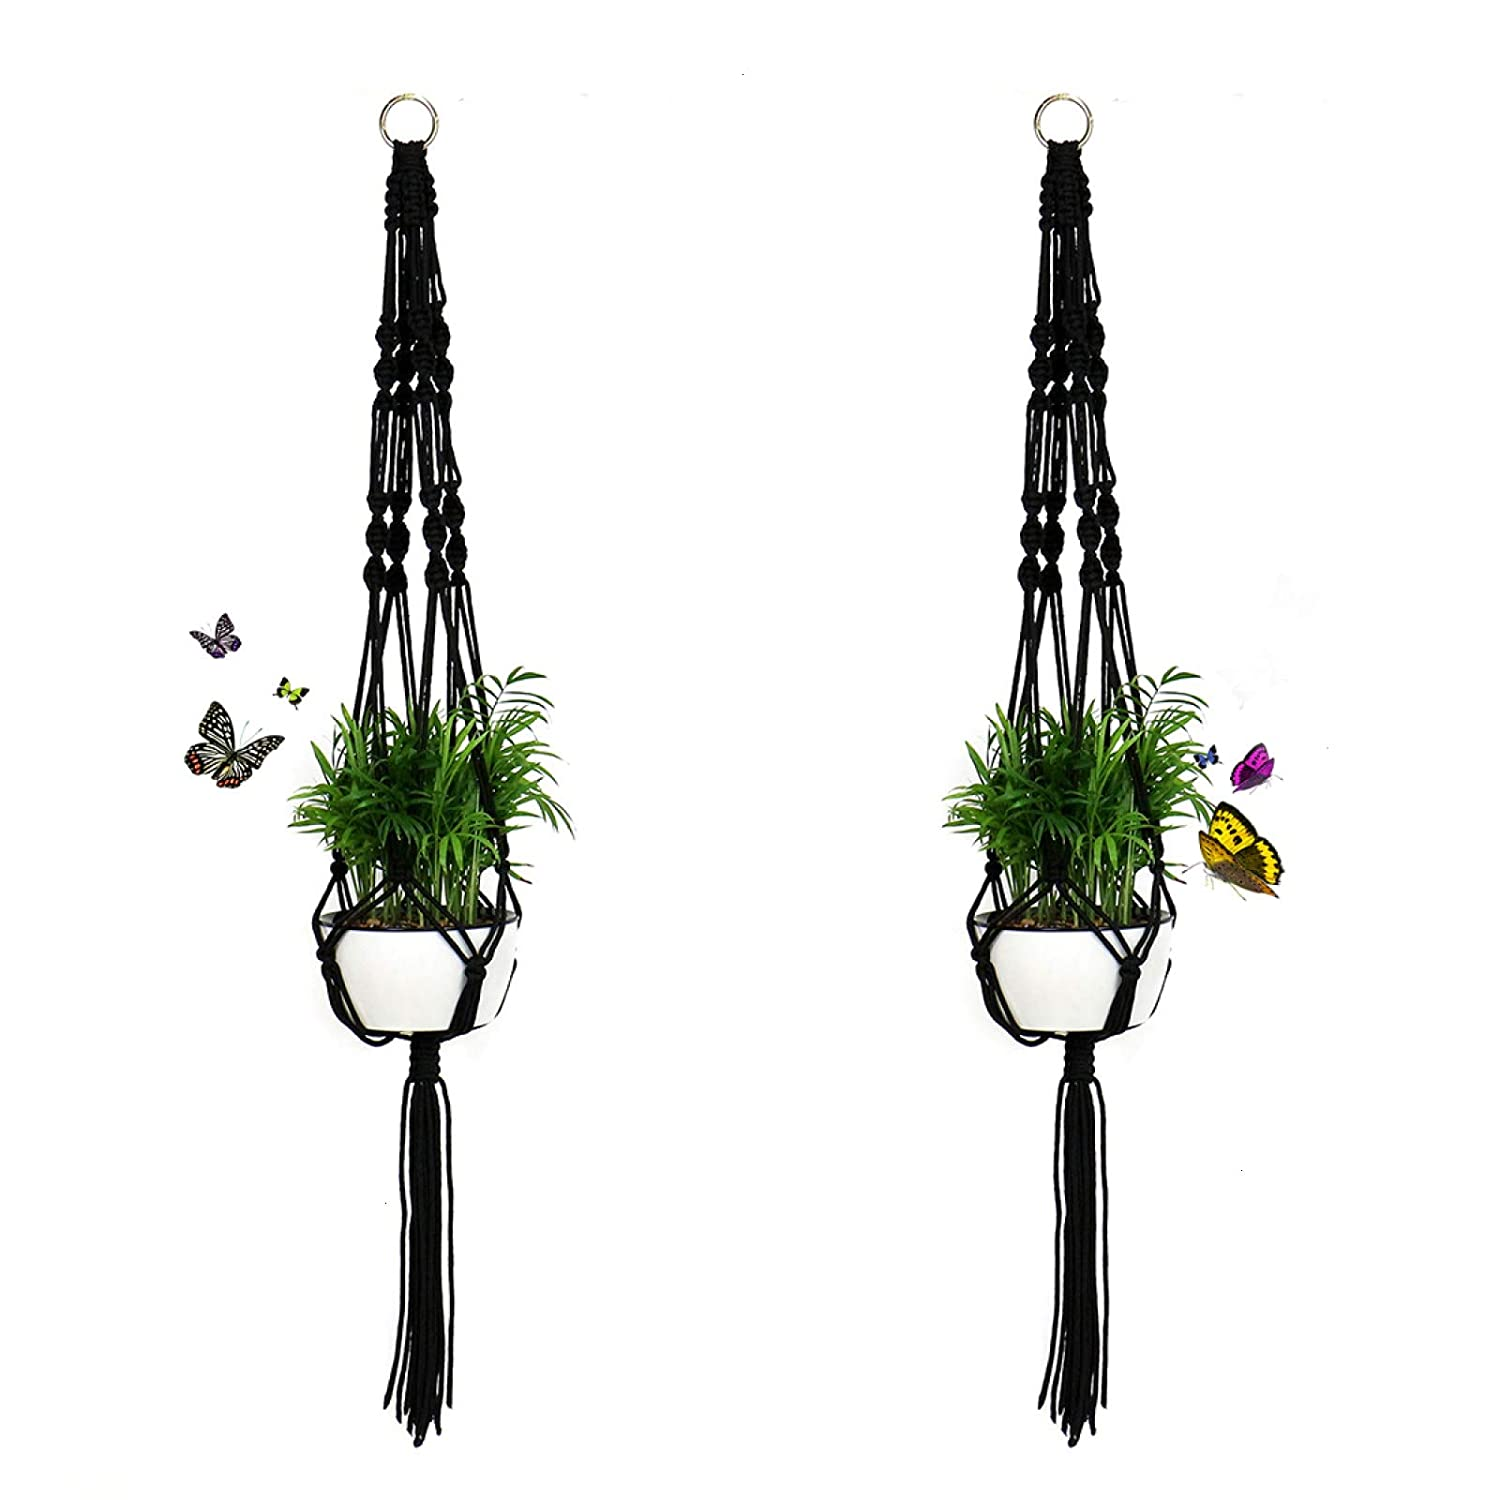 Timoo 2 Pack Plant Hanger Basket, 41 Inches Macrame Flower Pot Hanging Plant Holder Basket for Indoor Outdoor, 4 Legs Nylon Rope with Metal Ring, Black